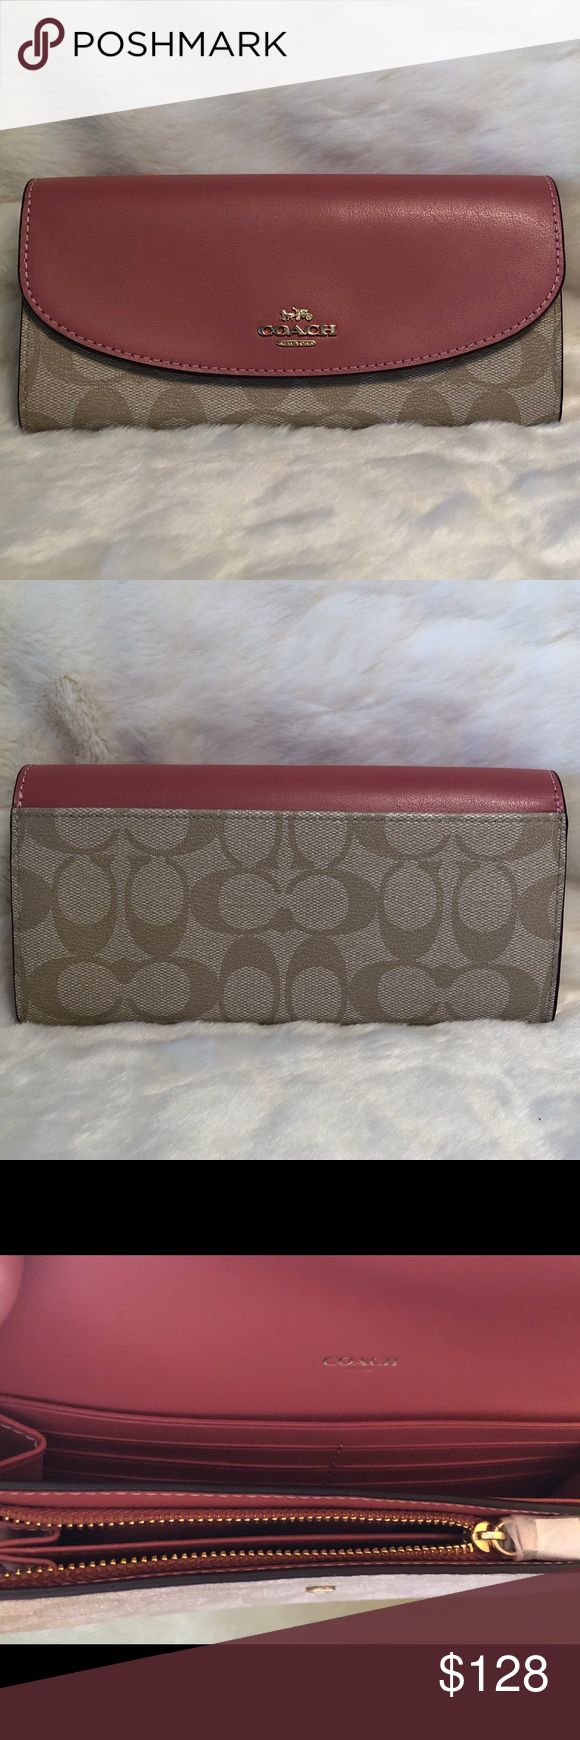 ✨Coach slim wallet – Peony * New without tags * Light khaki signature Coach …